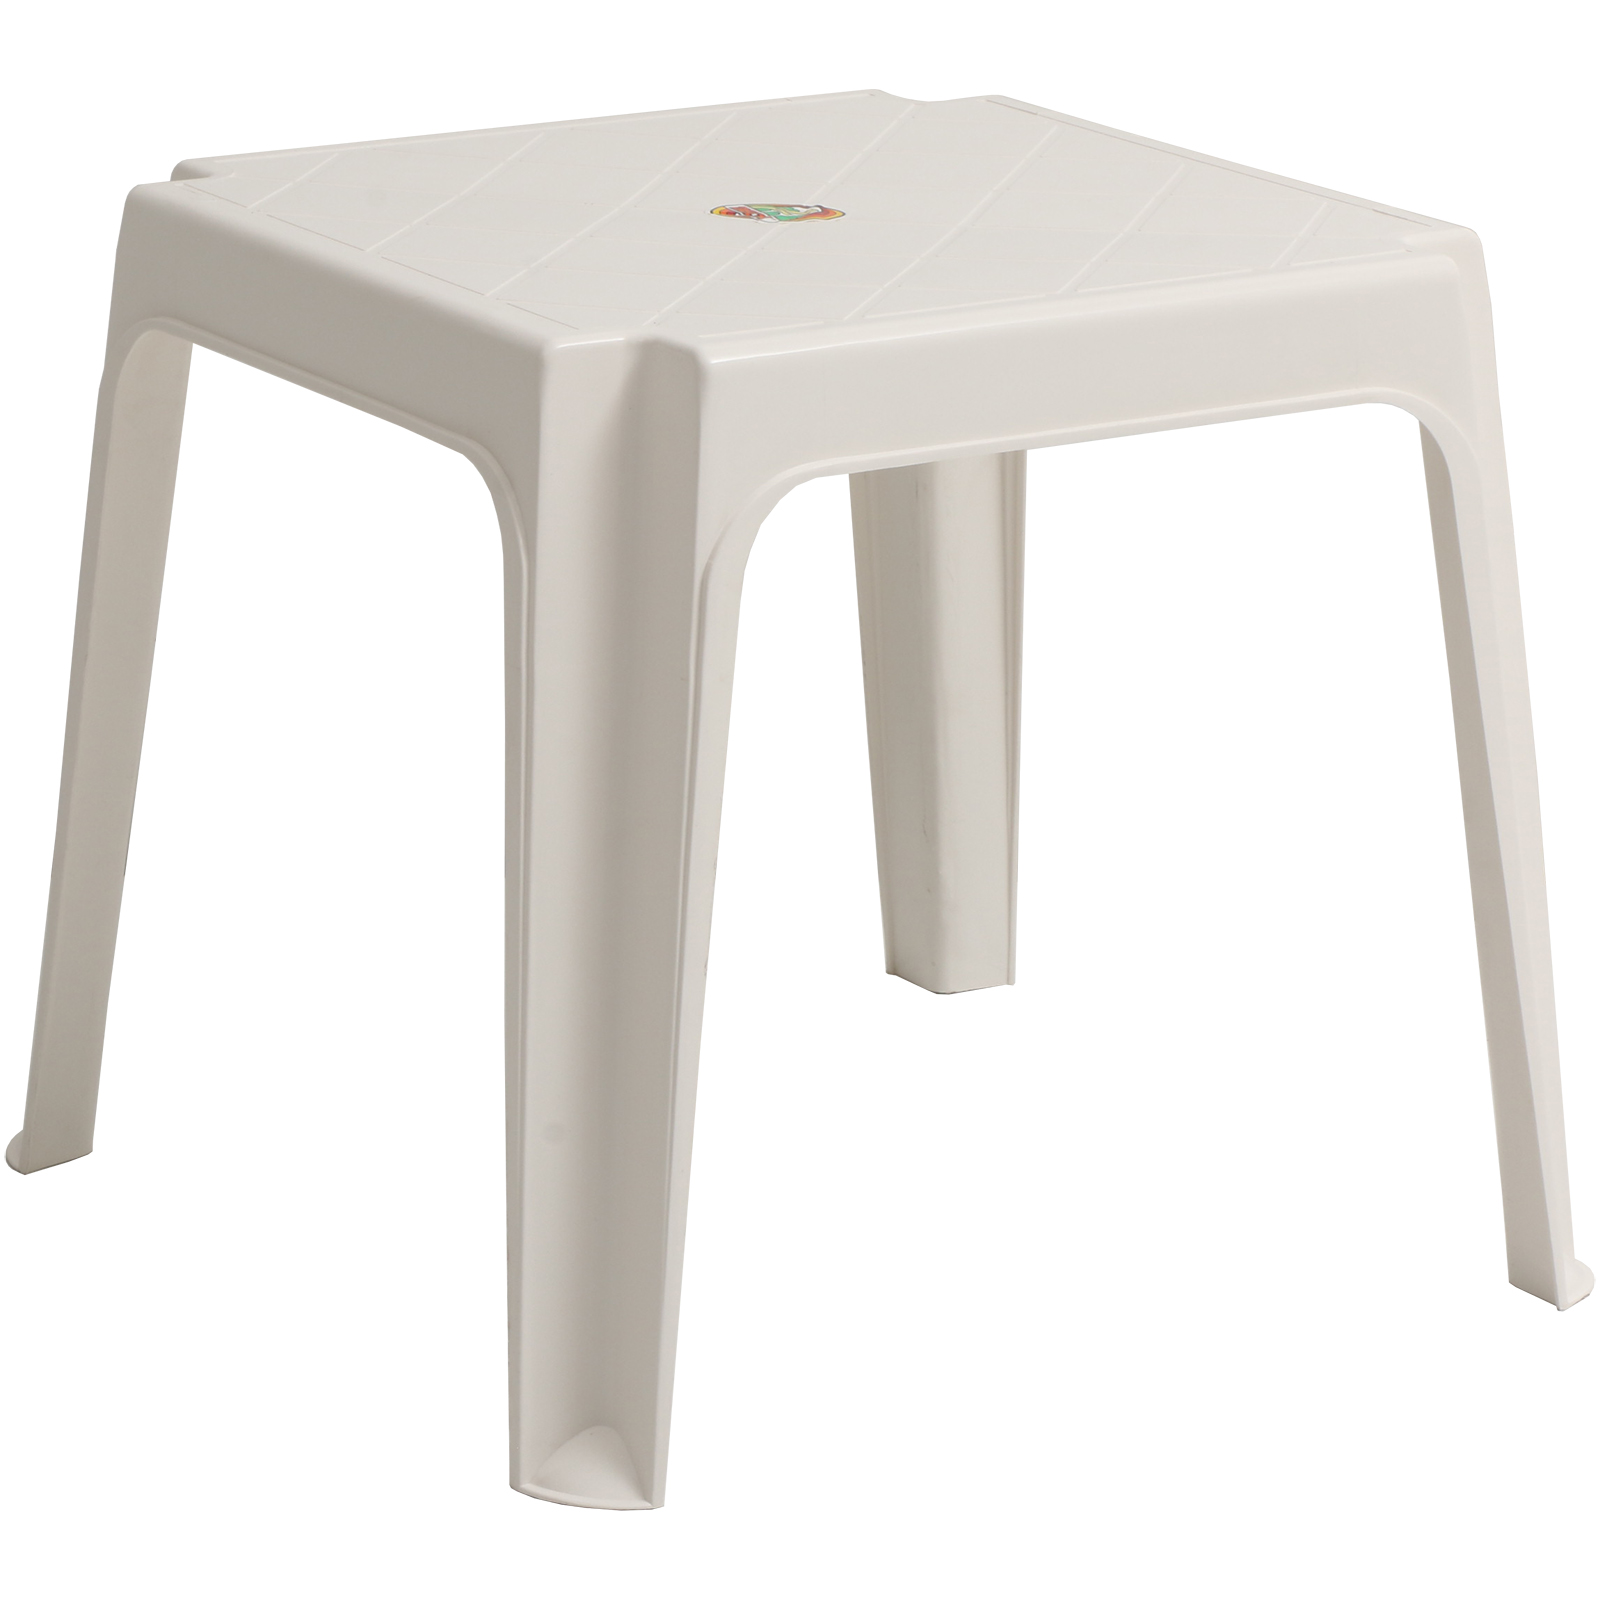 Details about Sun Lounger Side Coffee Table White Plastic Outdoor Garden  Patio Furniture Stool